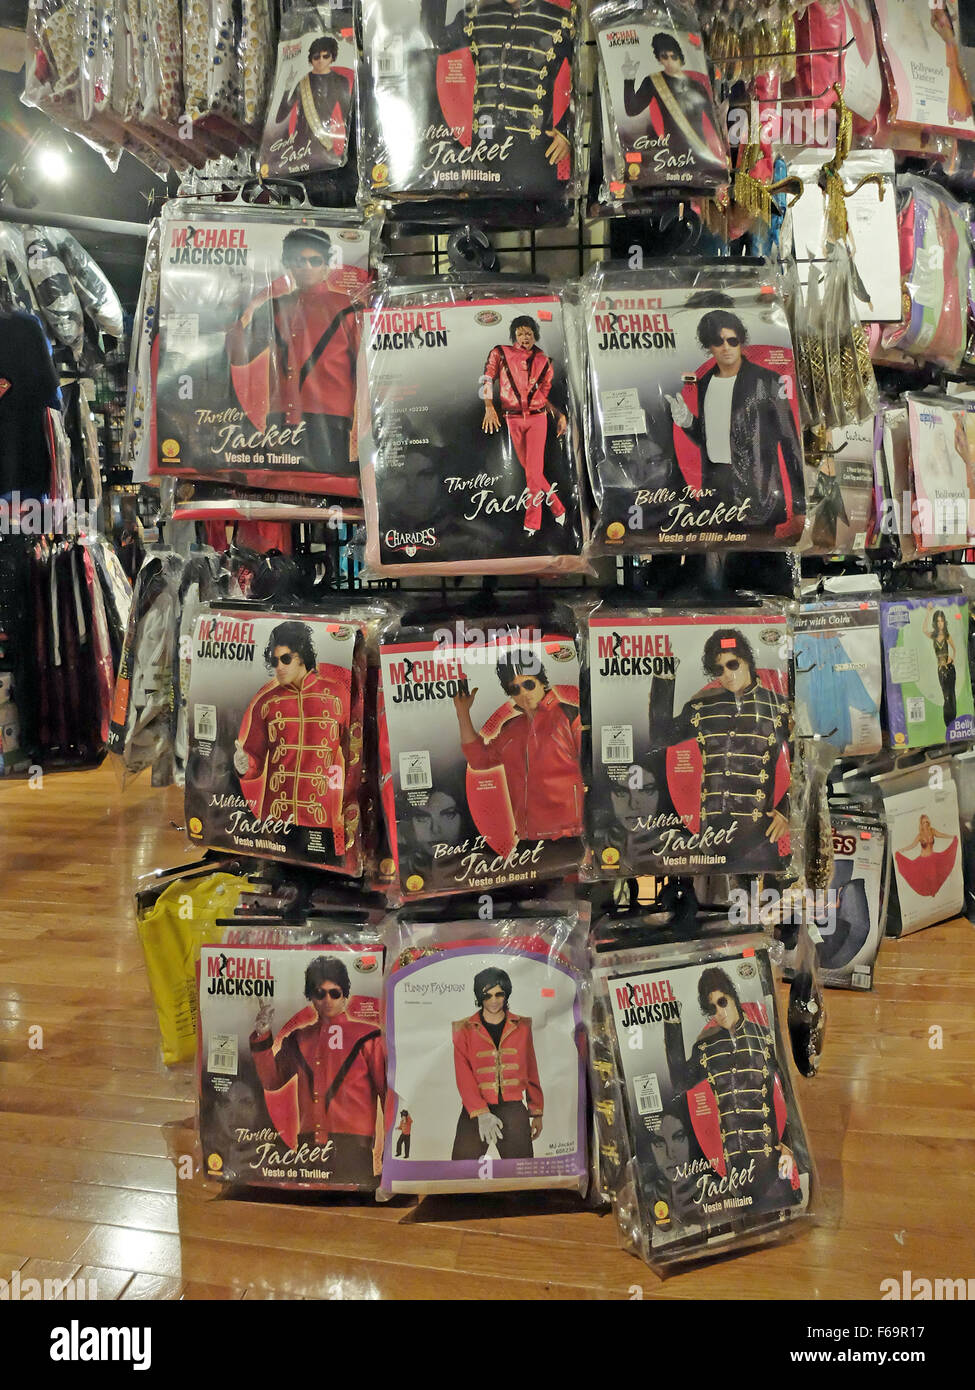 Michael Jackson Costumes For Sale At A Large Costume Store ...